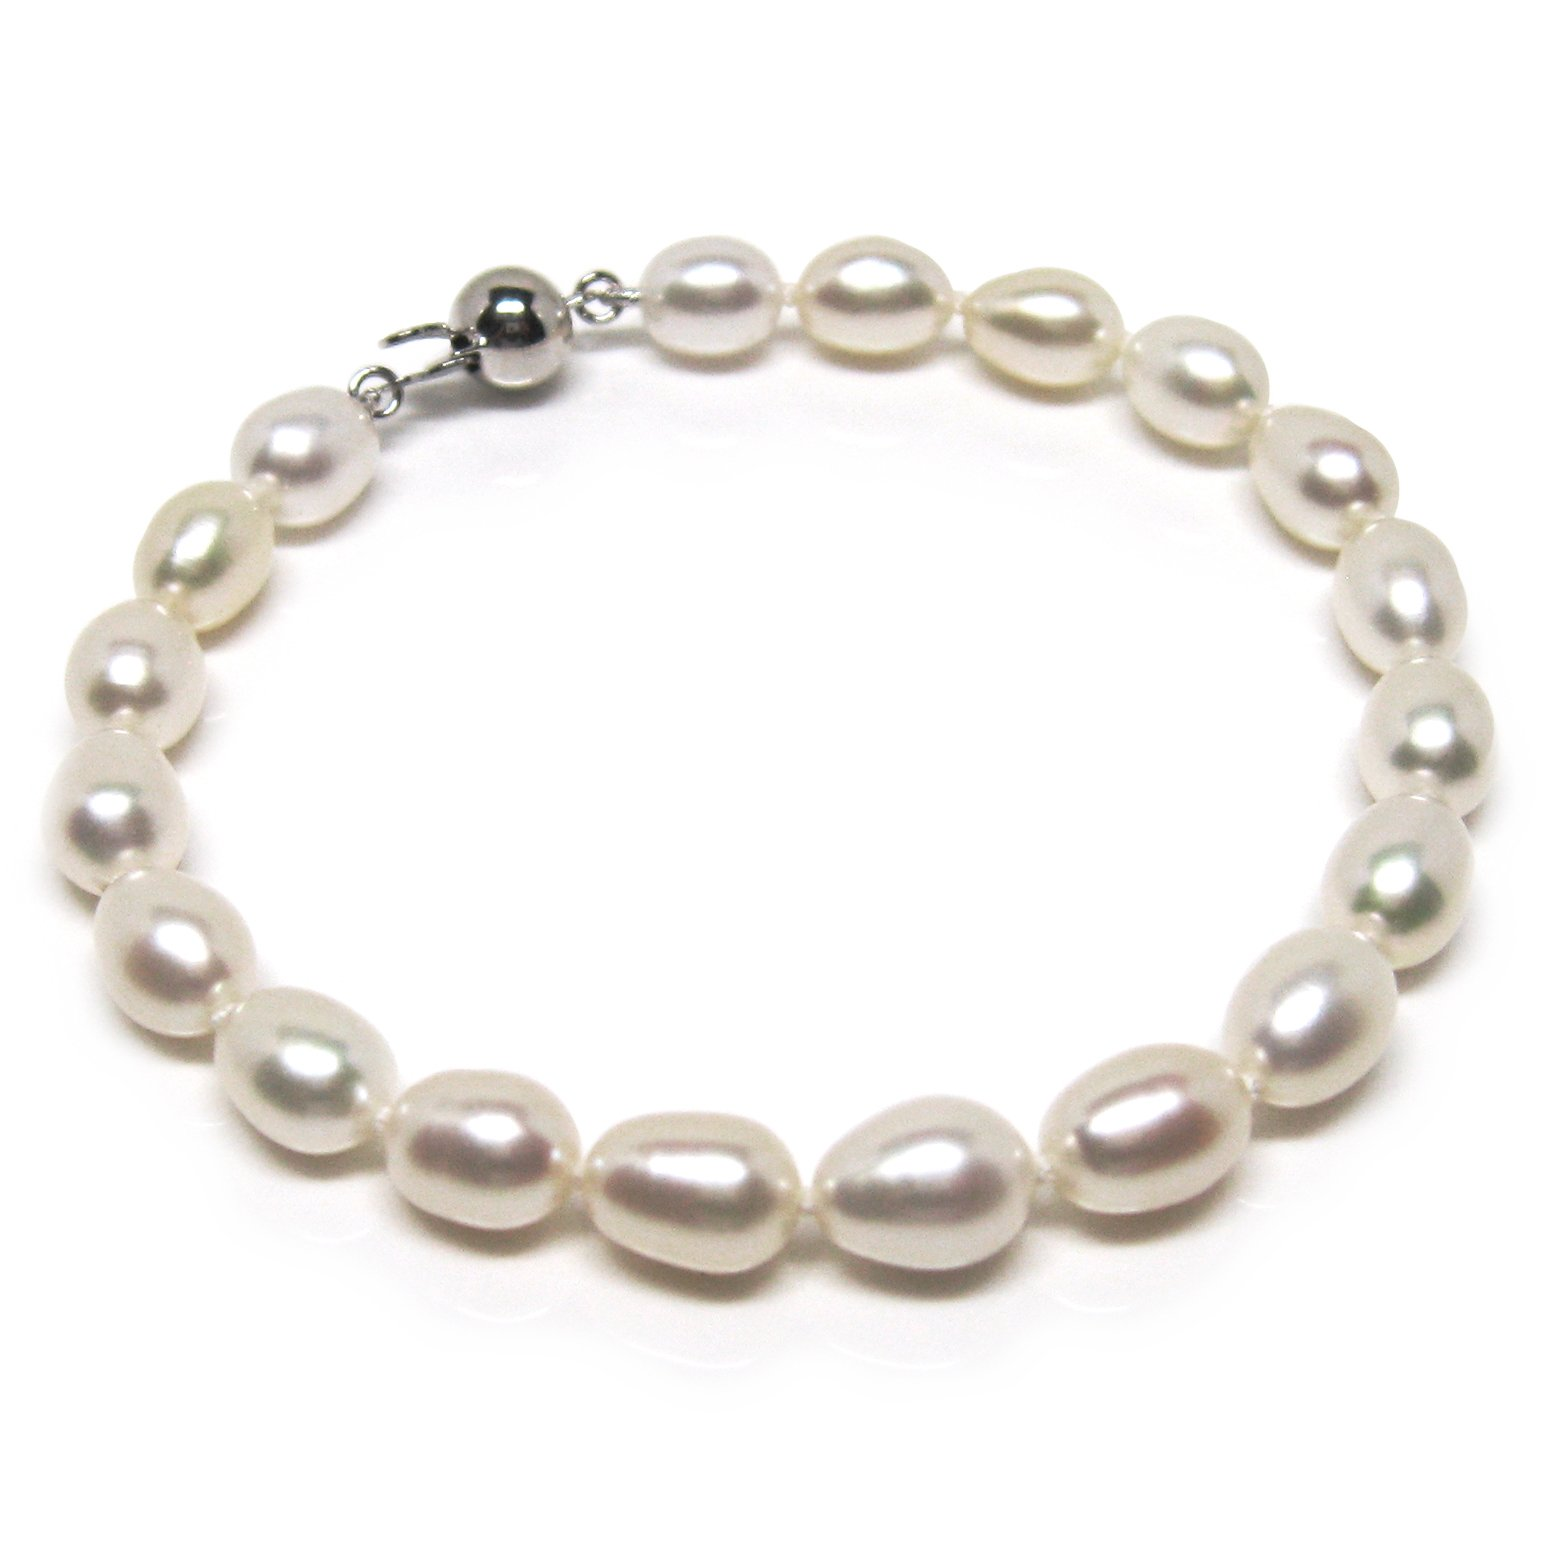 HinsonGayle AAA Handpicked 8-8.5mm White Oval Freshwater Cultured Pearl Bracelet (Sterling Silver)-7.5 in length